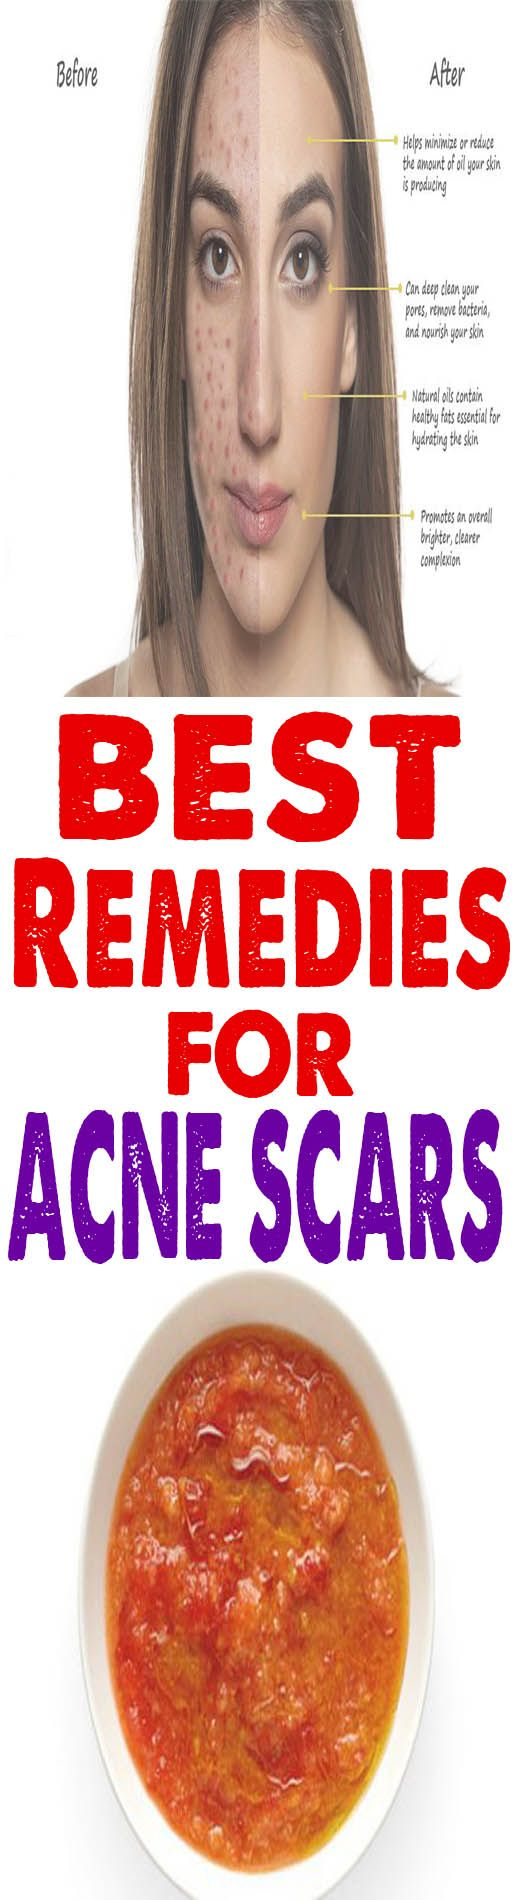 Deep scar removal home remedies - How to get rid of deep acne scars overnight naturally